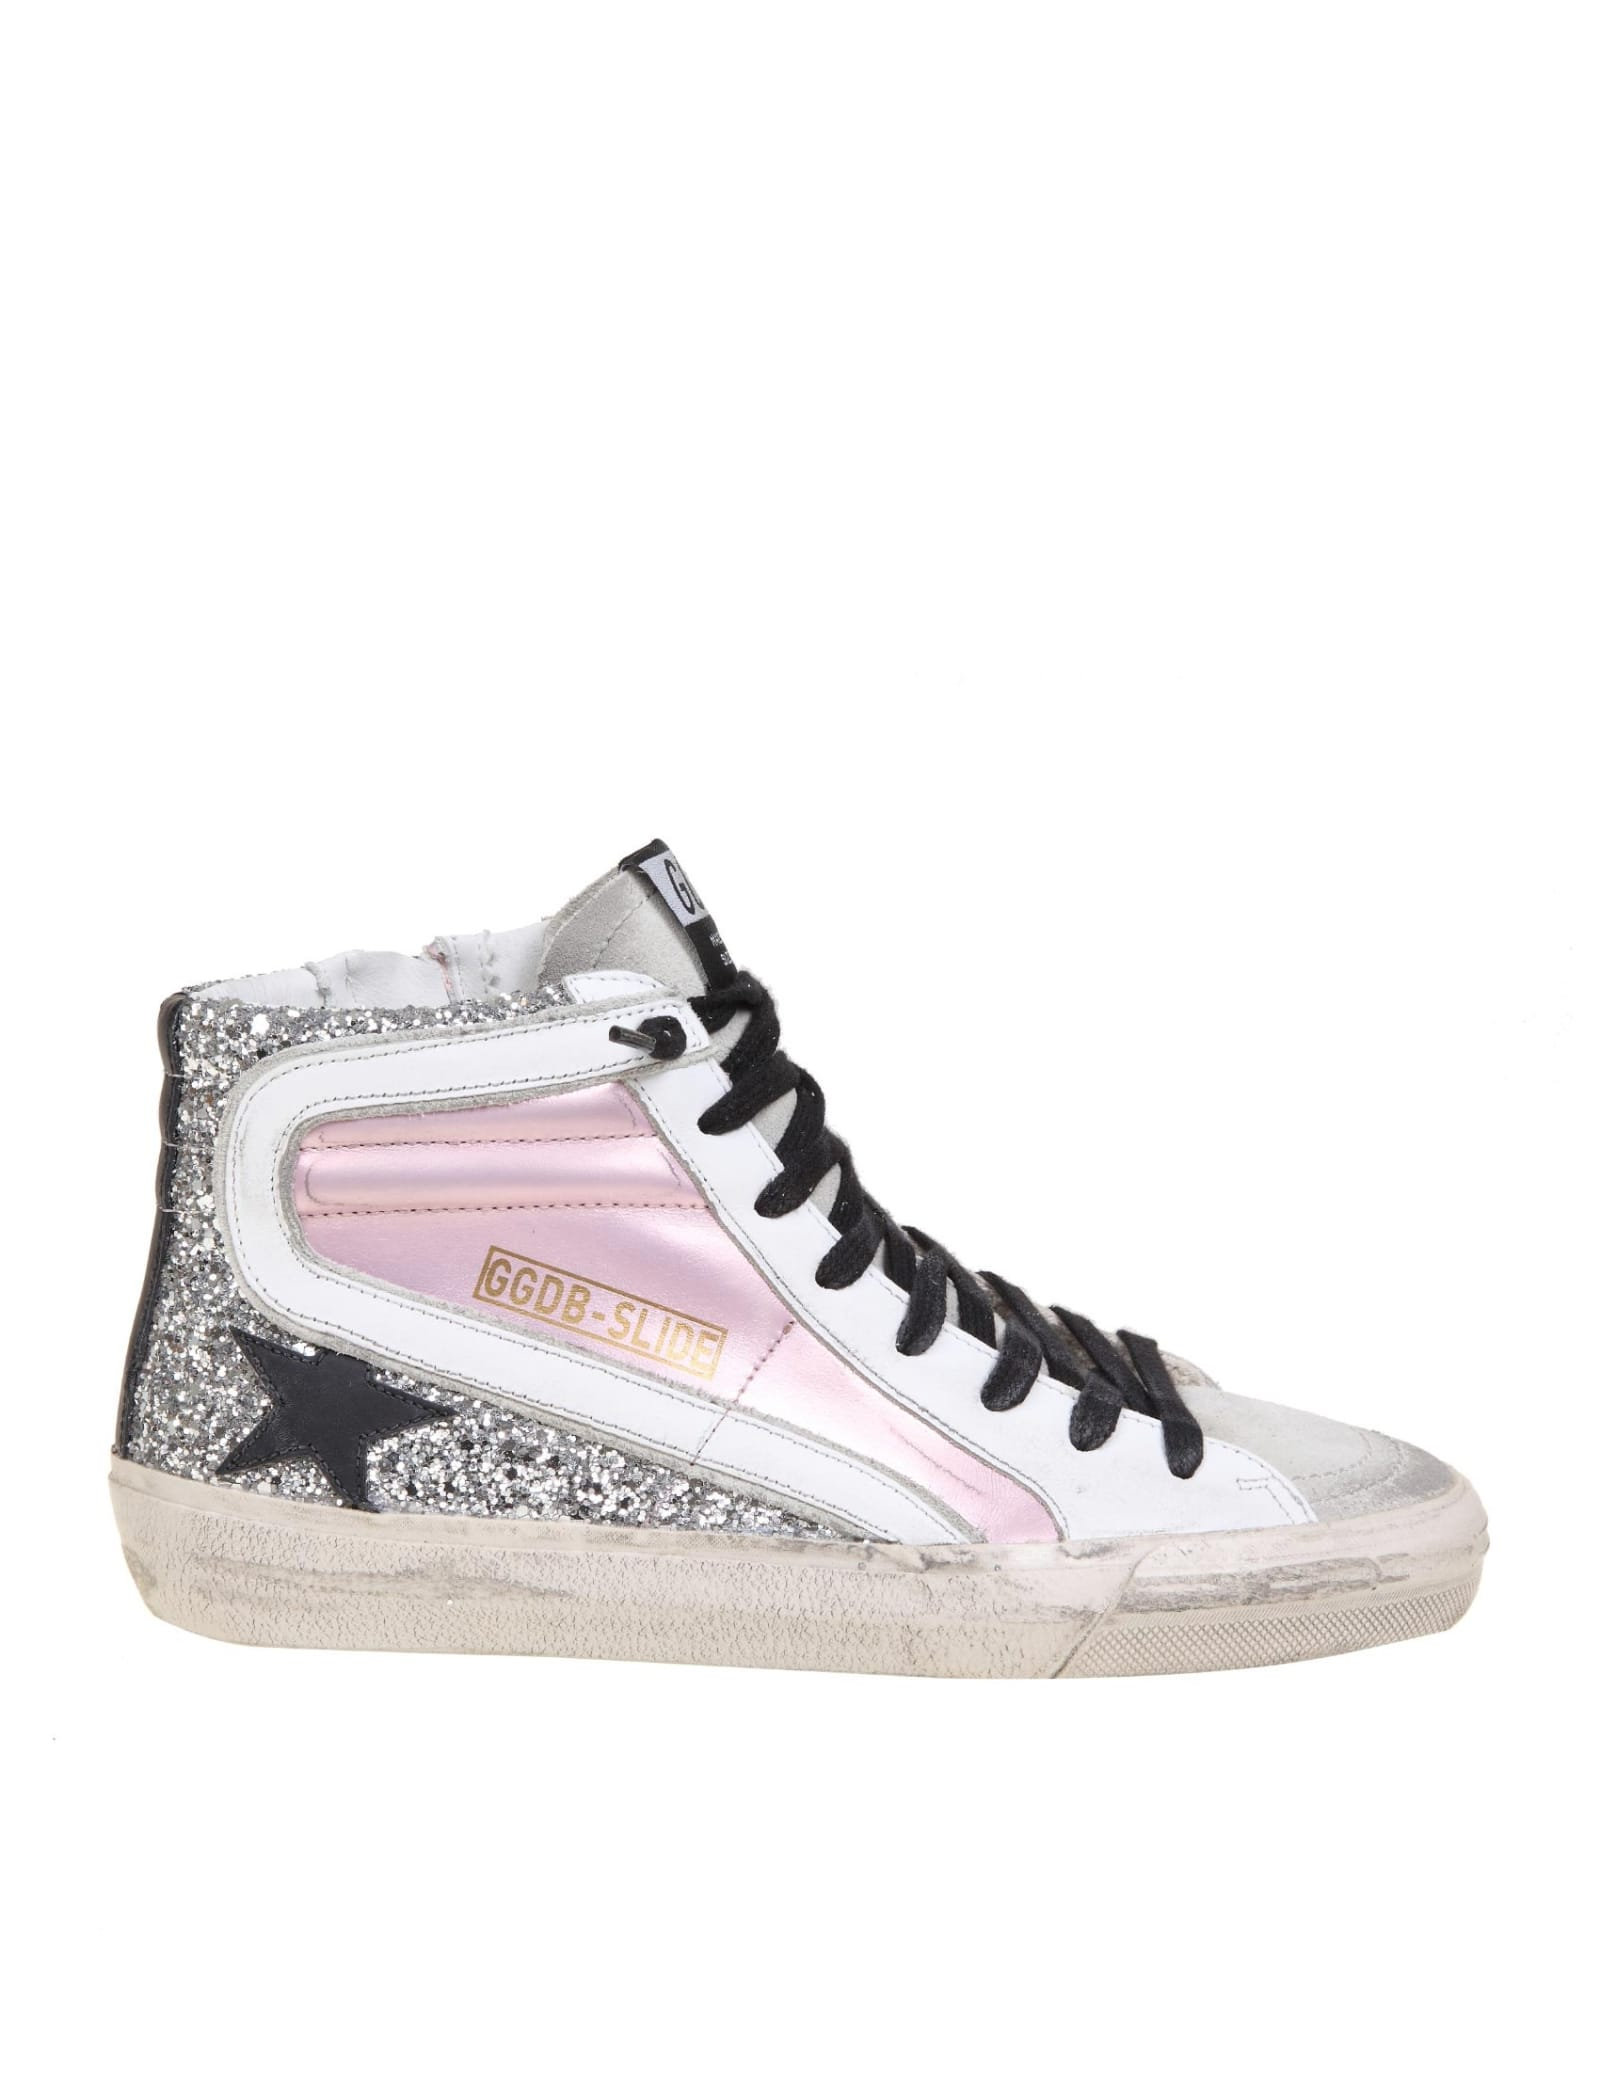 Golden Goose SLIDE IN LAMINATED LEATHER AND SUEDE